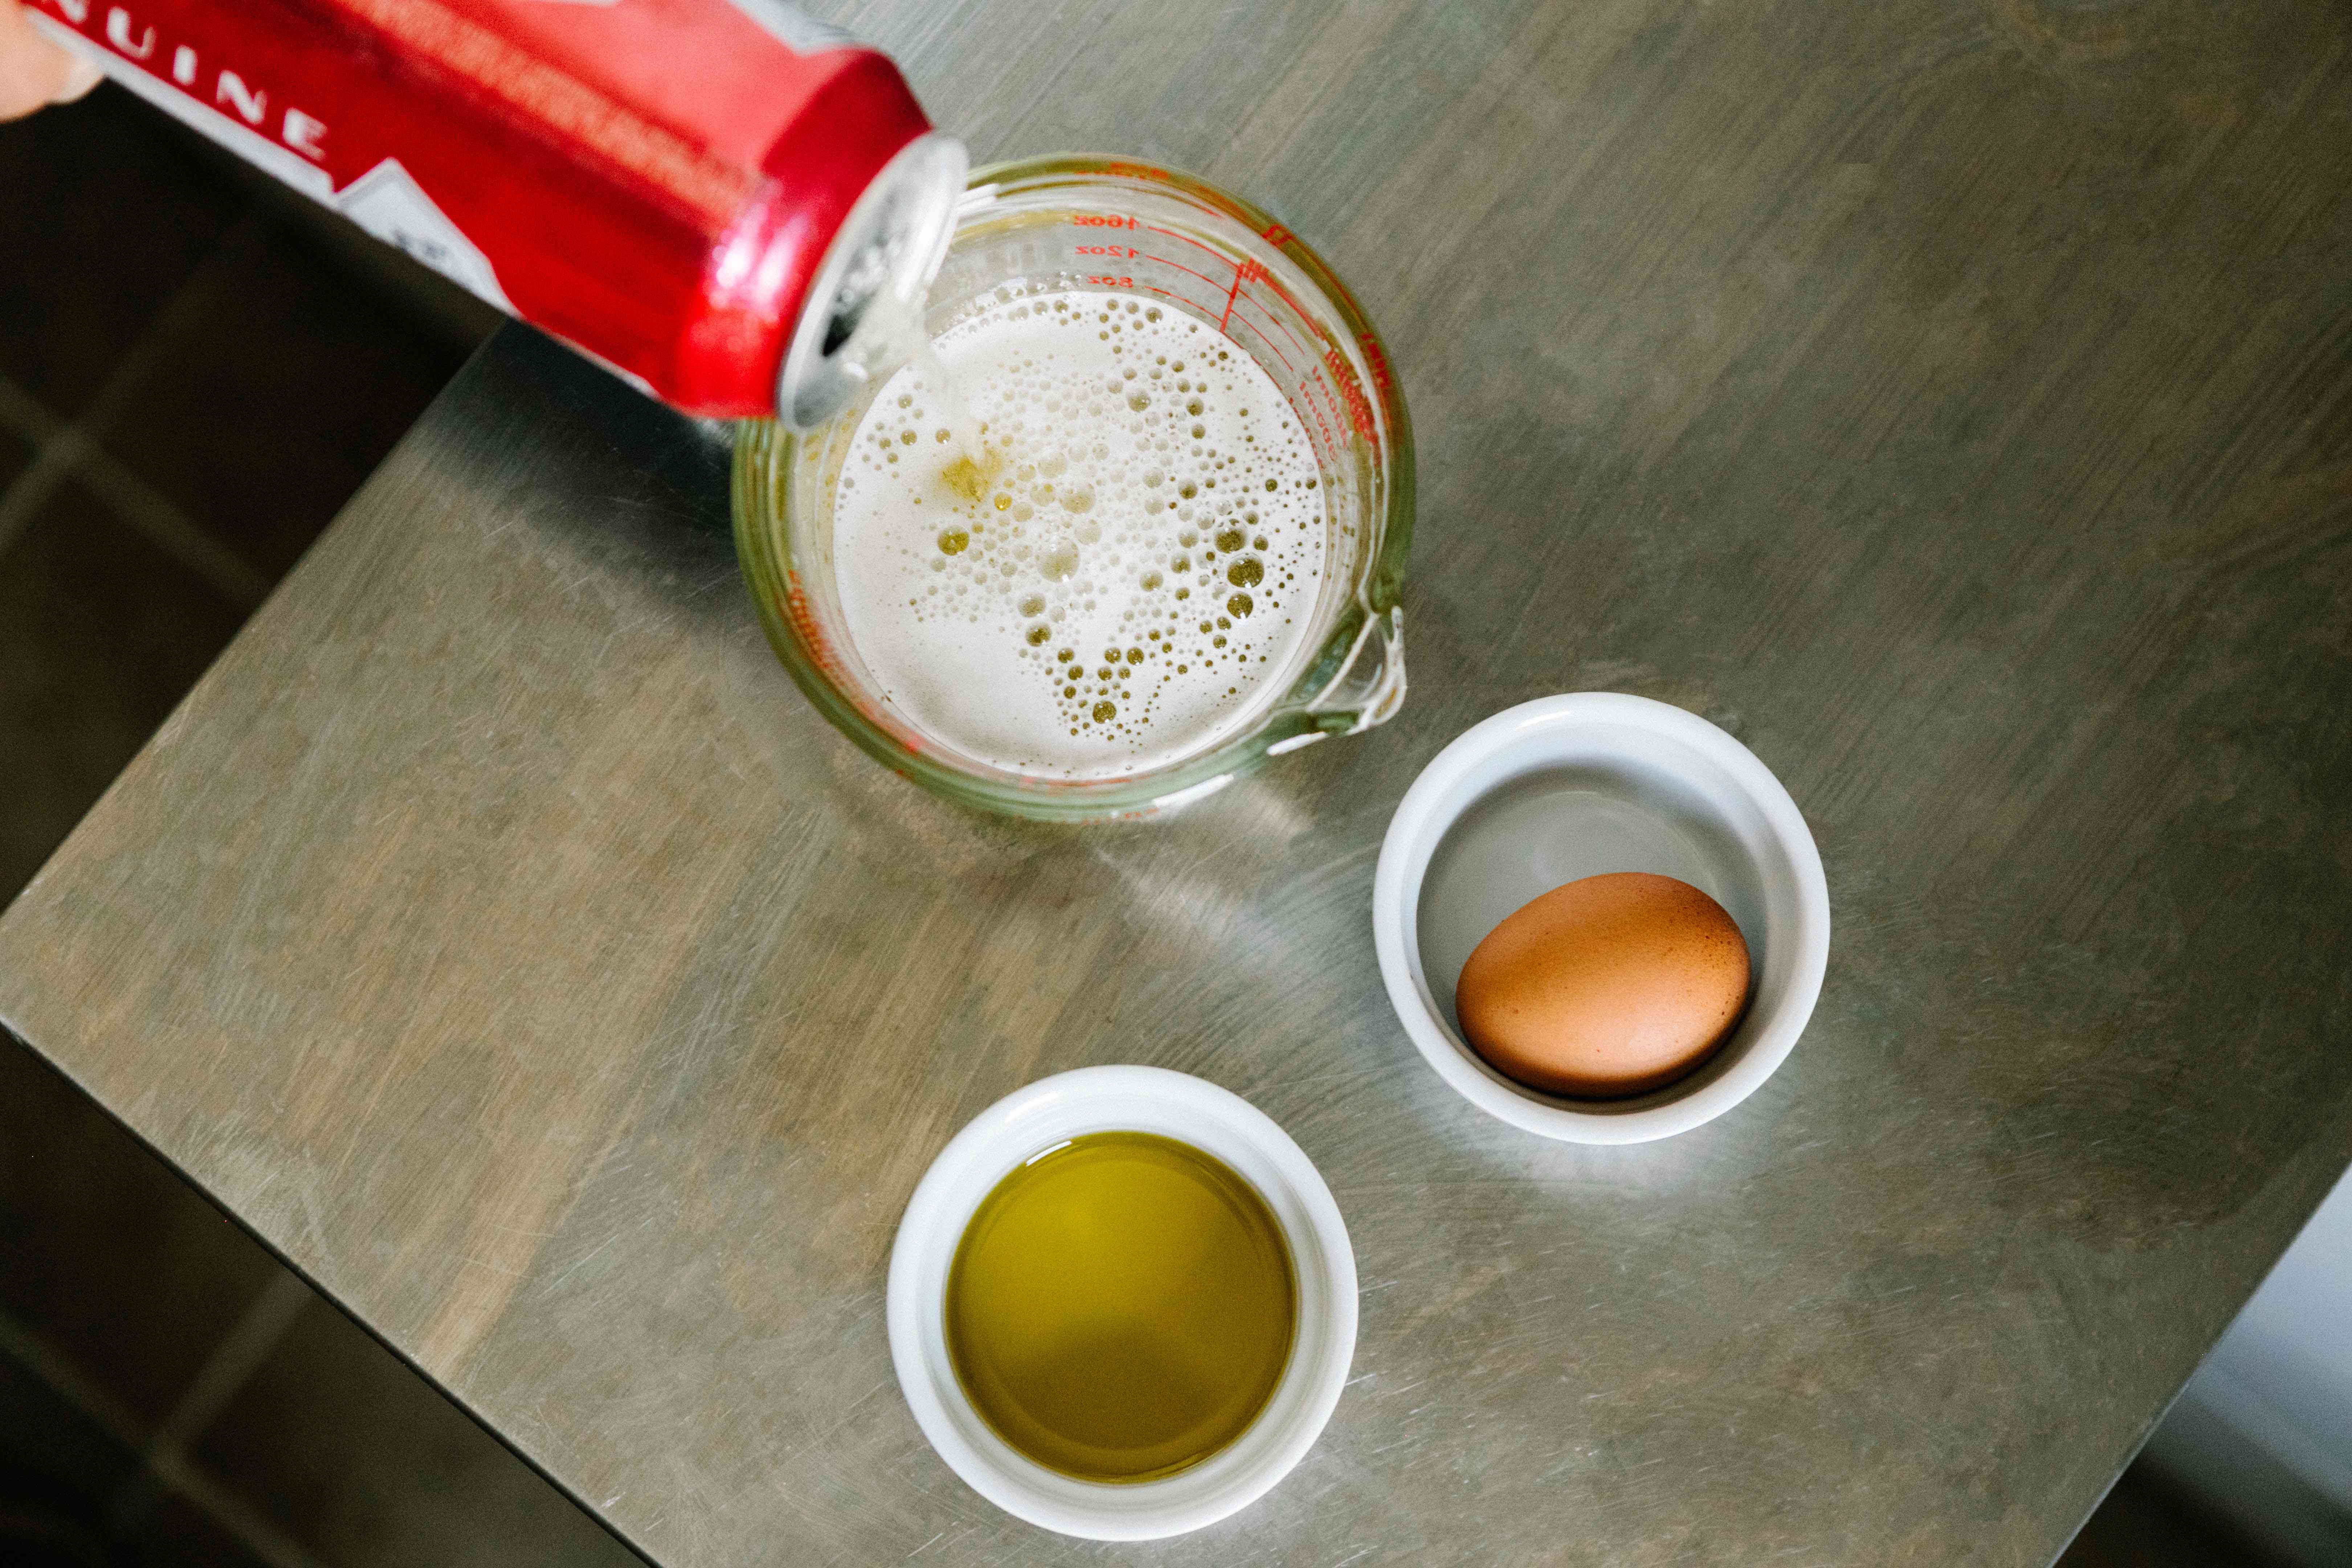 can of beer poured into measuring cup, next to olive oil and egg for hair mask